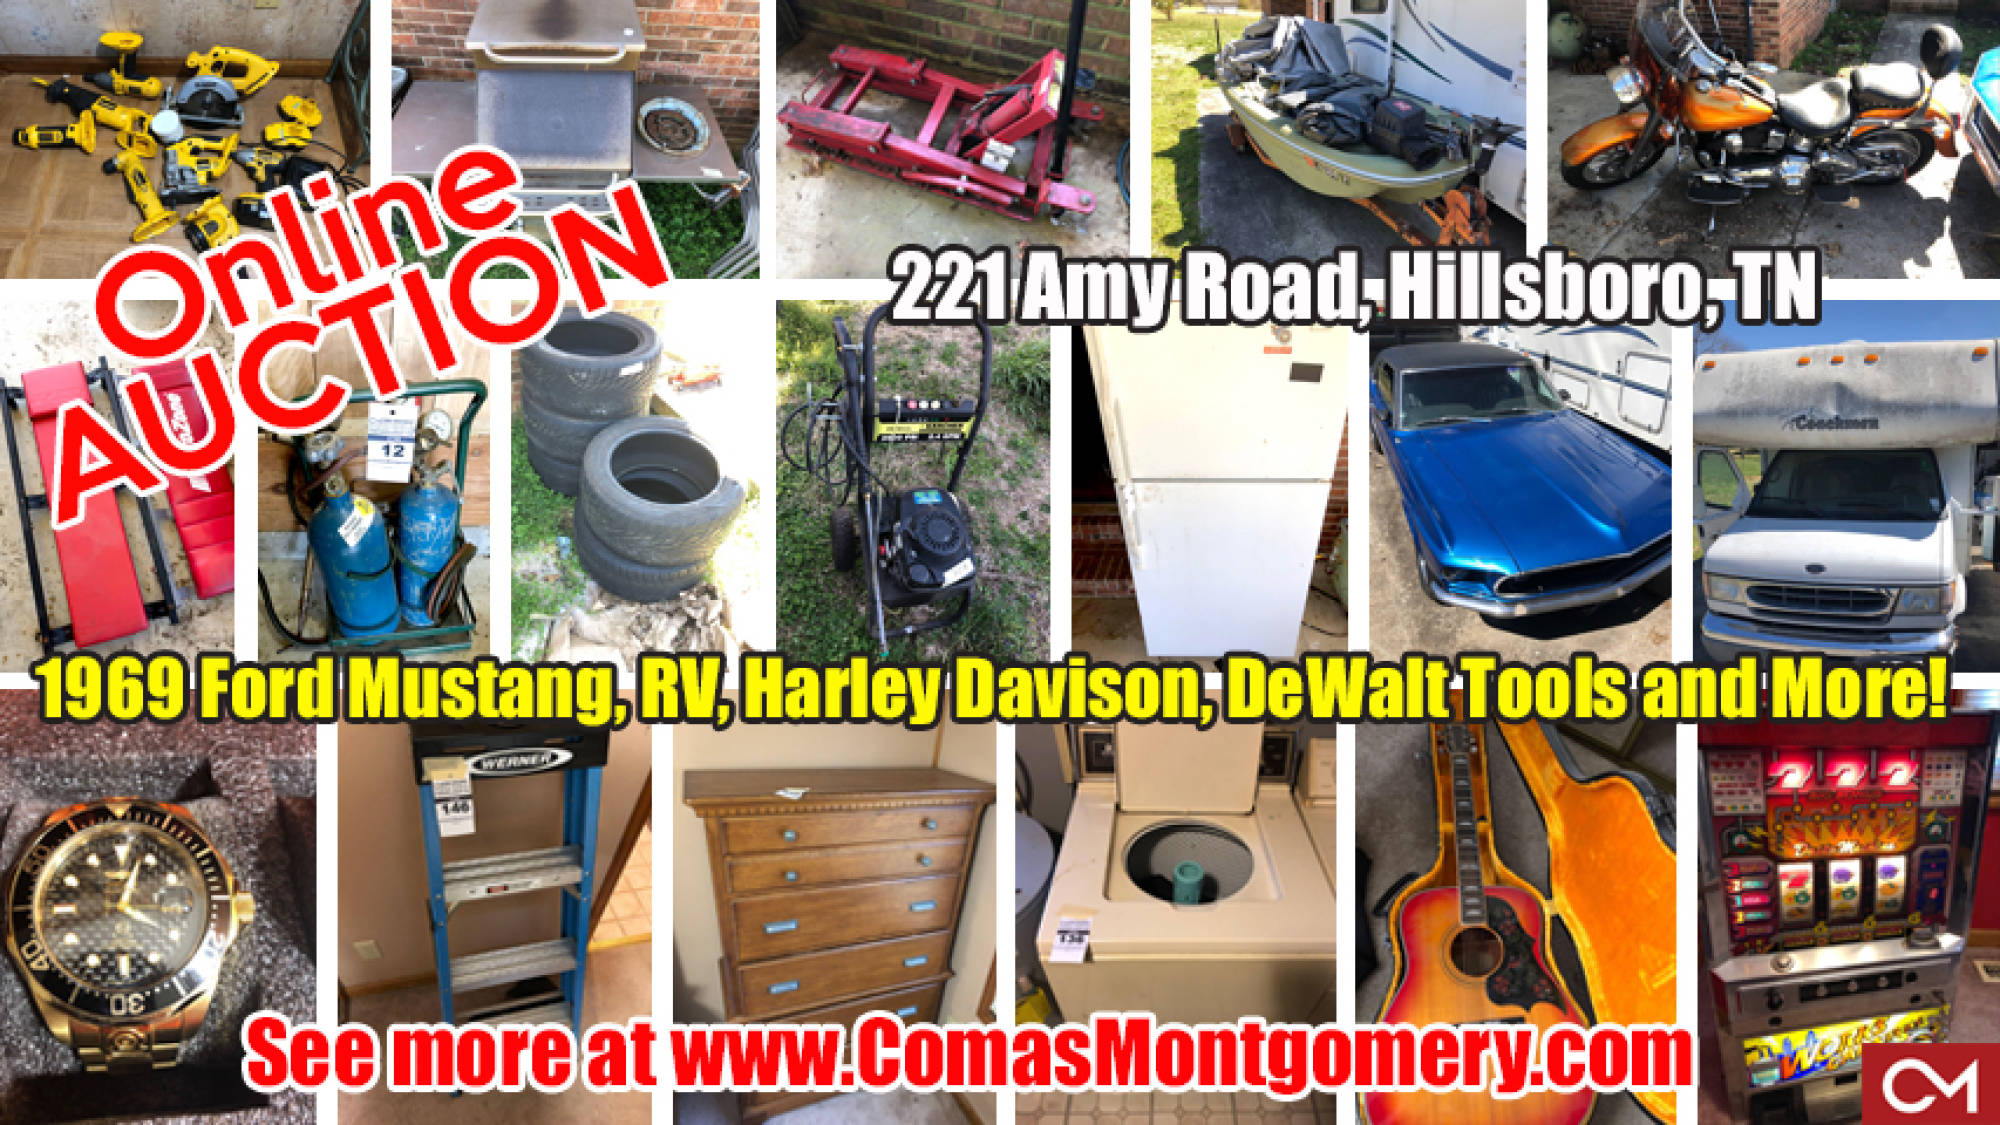 Auction, Tools, Motorcycle, RV, Ford, Mustang, For Sale, Watches, Furniture, Appliances, DeWalt, Car Tools, Estate, Sale, Bid, Online, Manchester, Hillsboro, Coffee, County, Tennessee, Comas, Montgomery